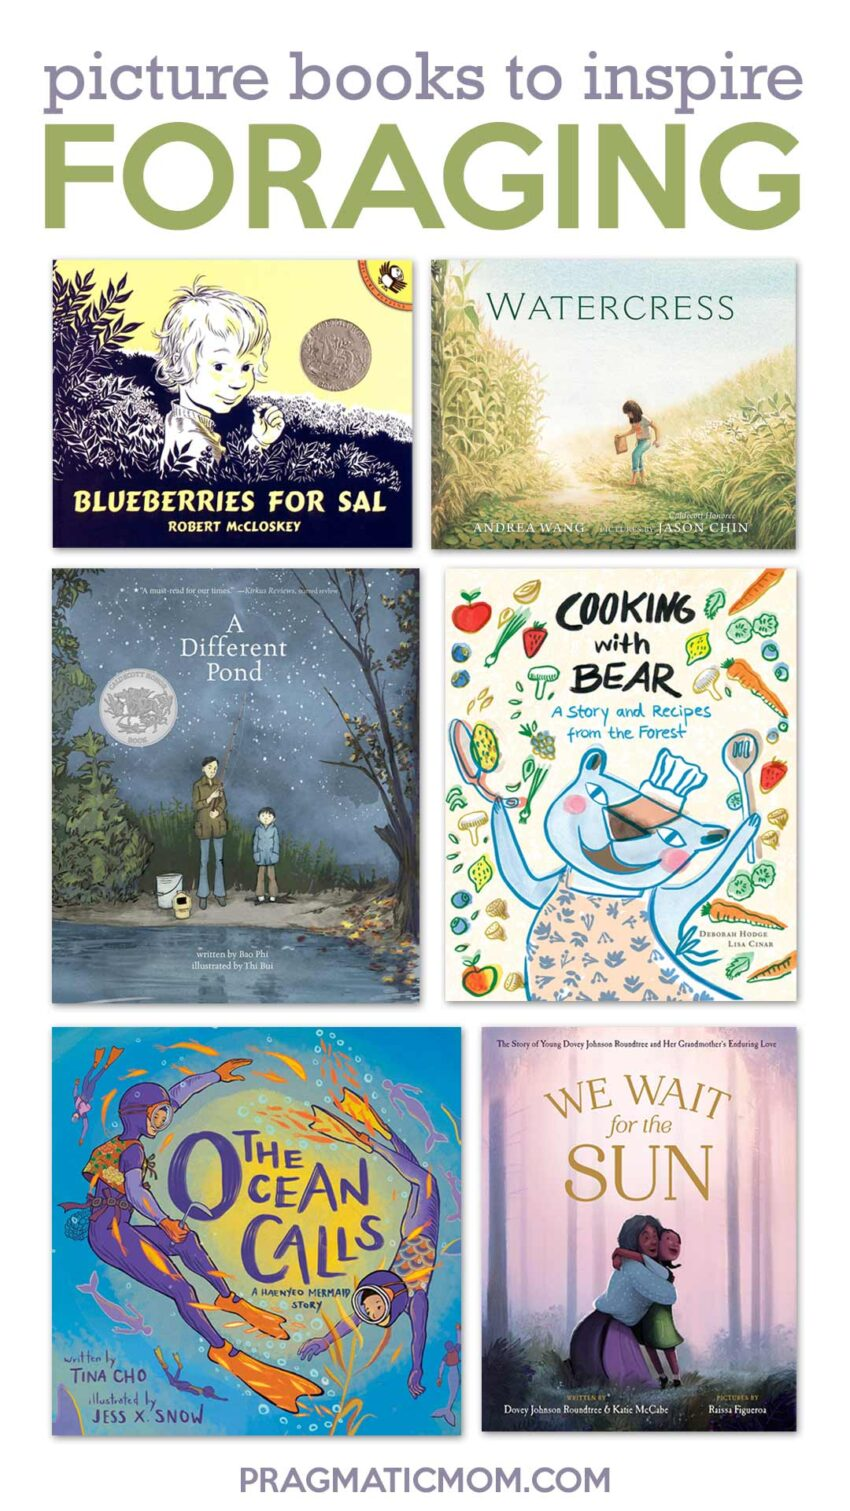 Picture Books to Inspire Foraging